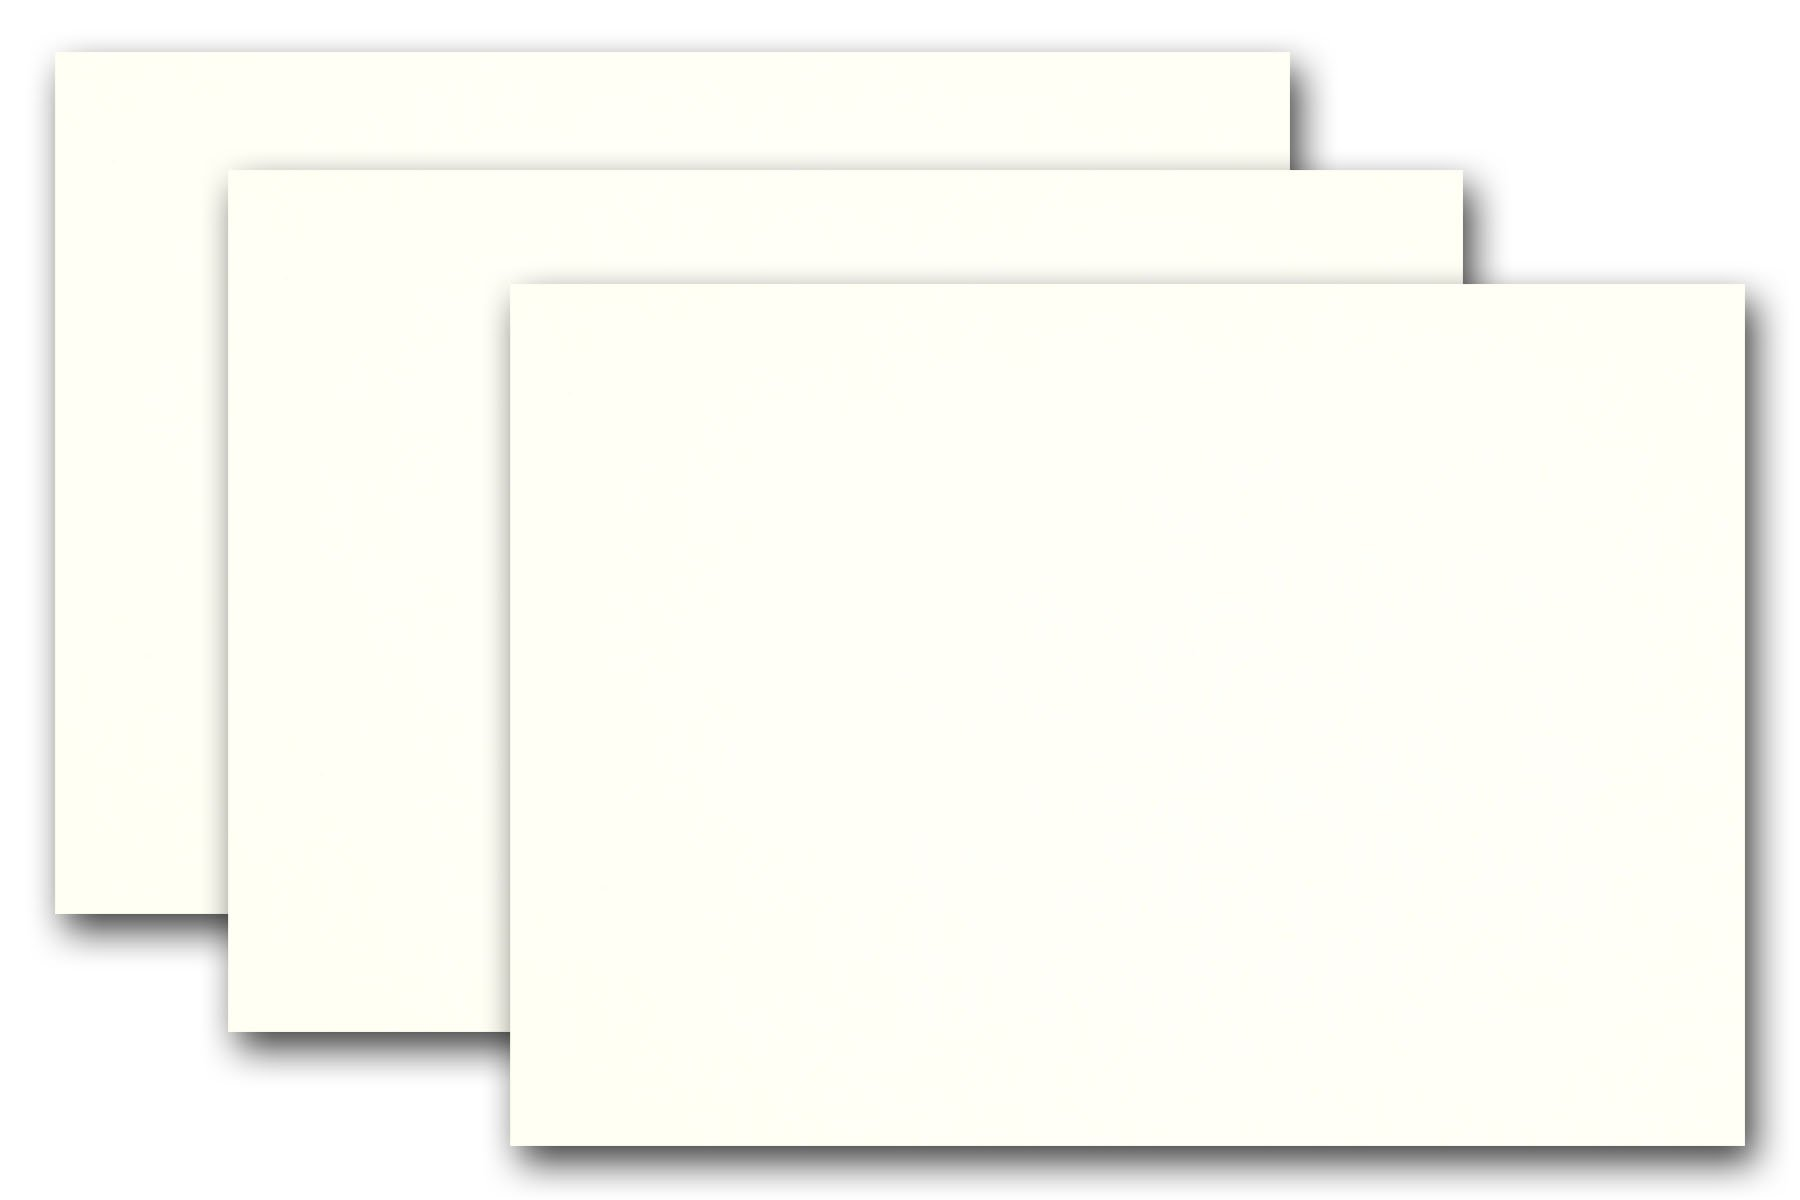 Premium Colored Blank 8 1/2'' x 5 1/2'' Card Stock Half Letter A-9 Card Stock (250 Pack, Whip Cream)